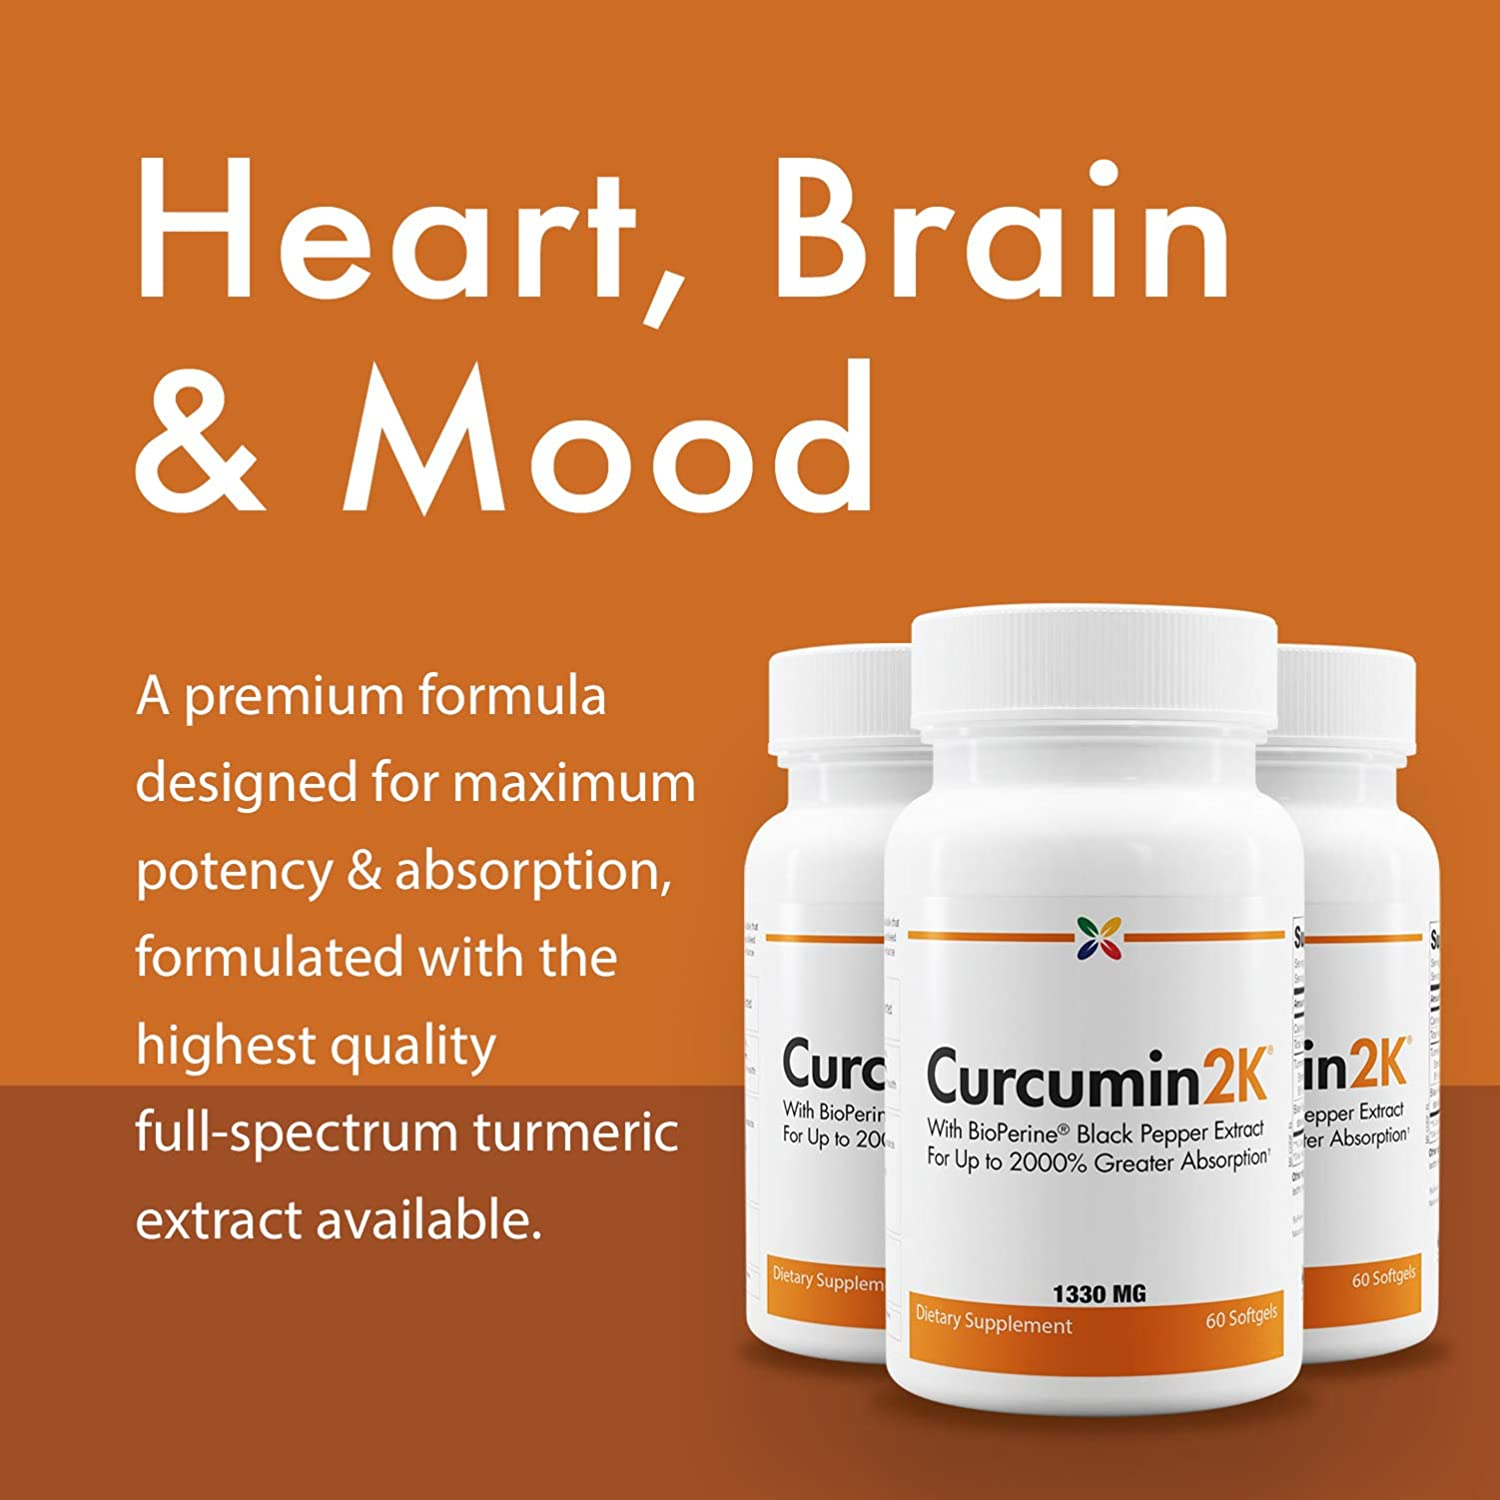 3-Bottle Pack – Curcumin2K Formula with BioPerine Black Pepper Extract for Up to 2000 Greater Absorption – Stop Aging Now – 60 Veggie Caps